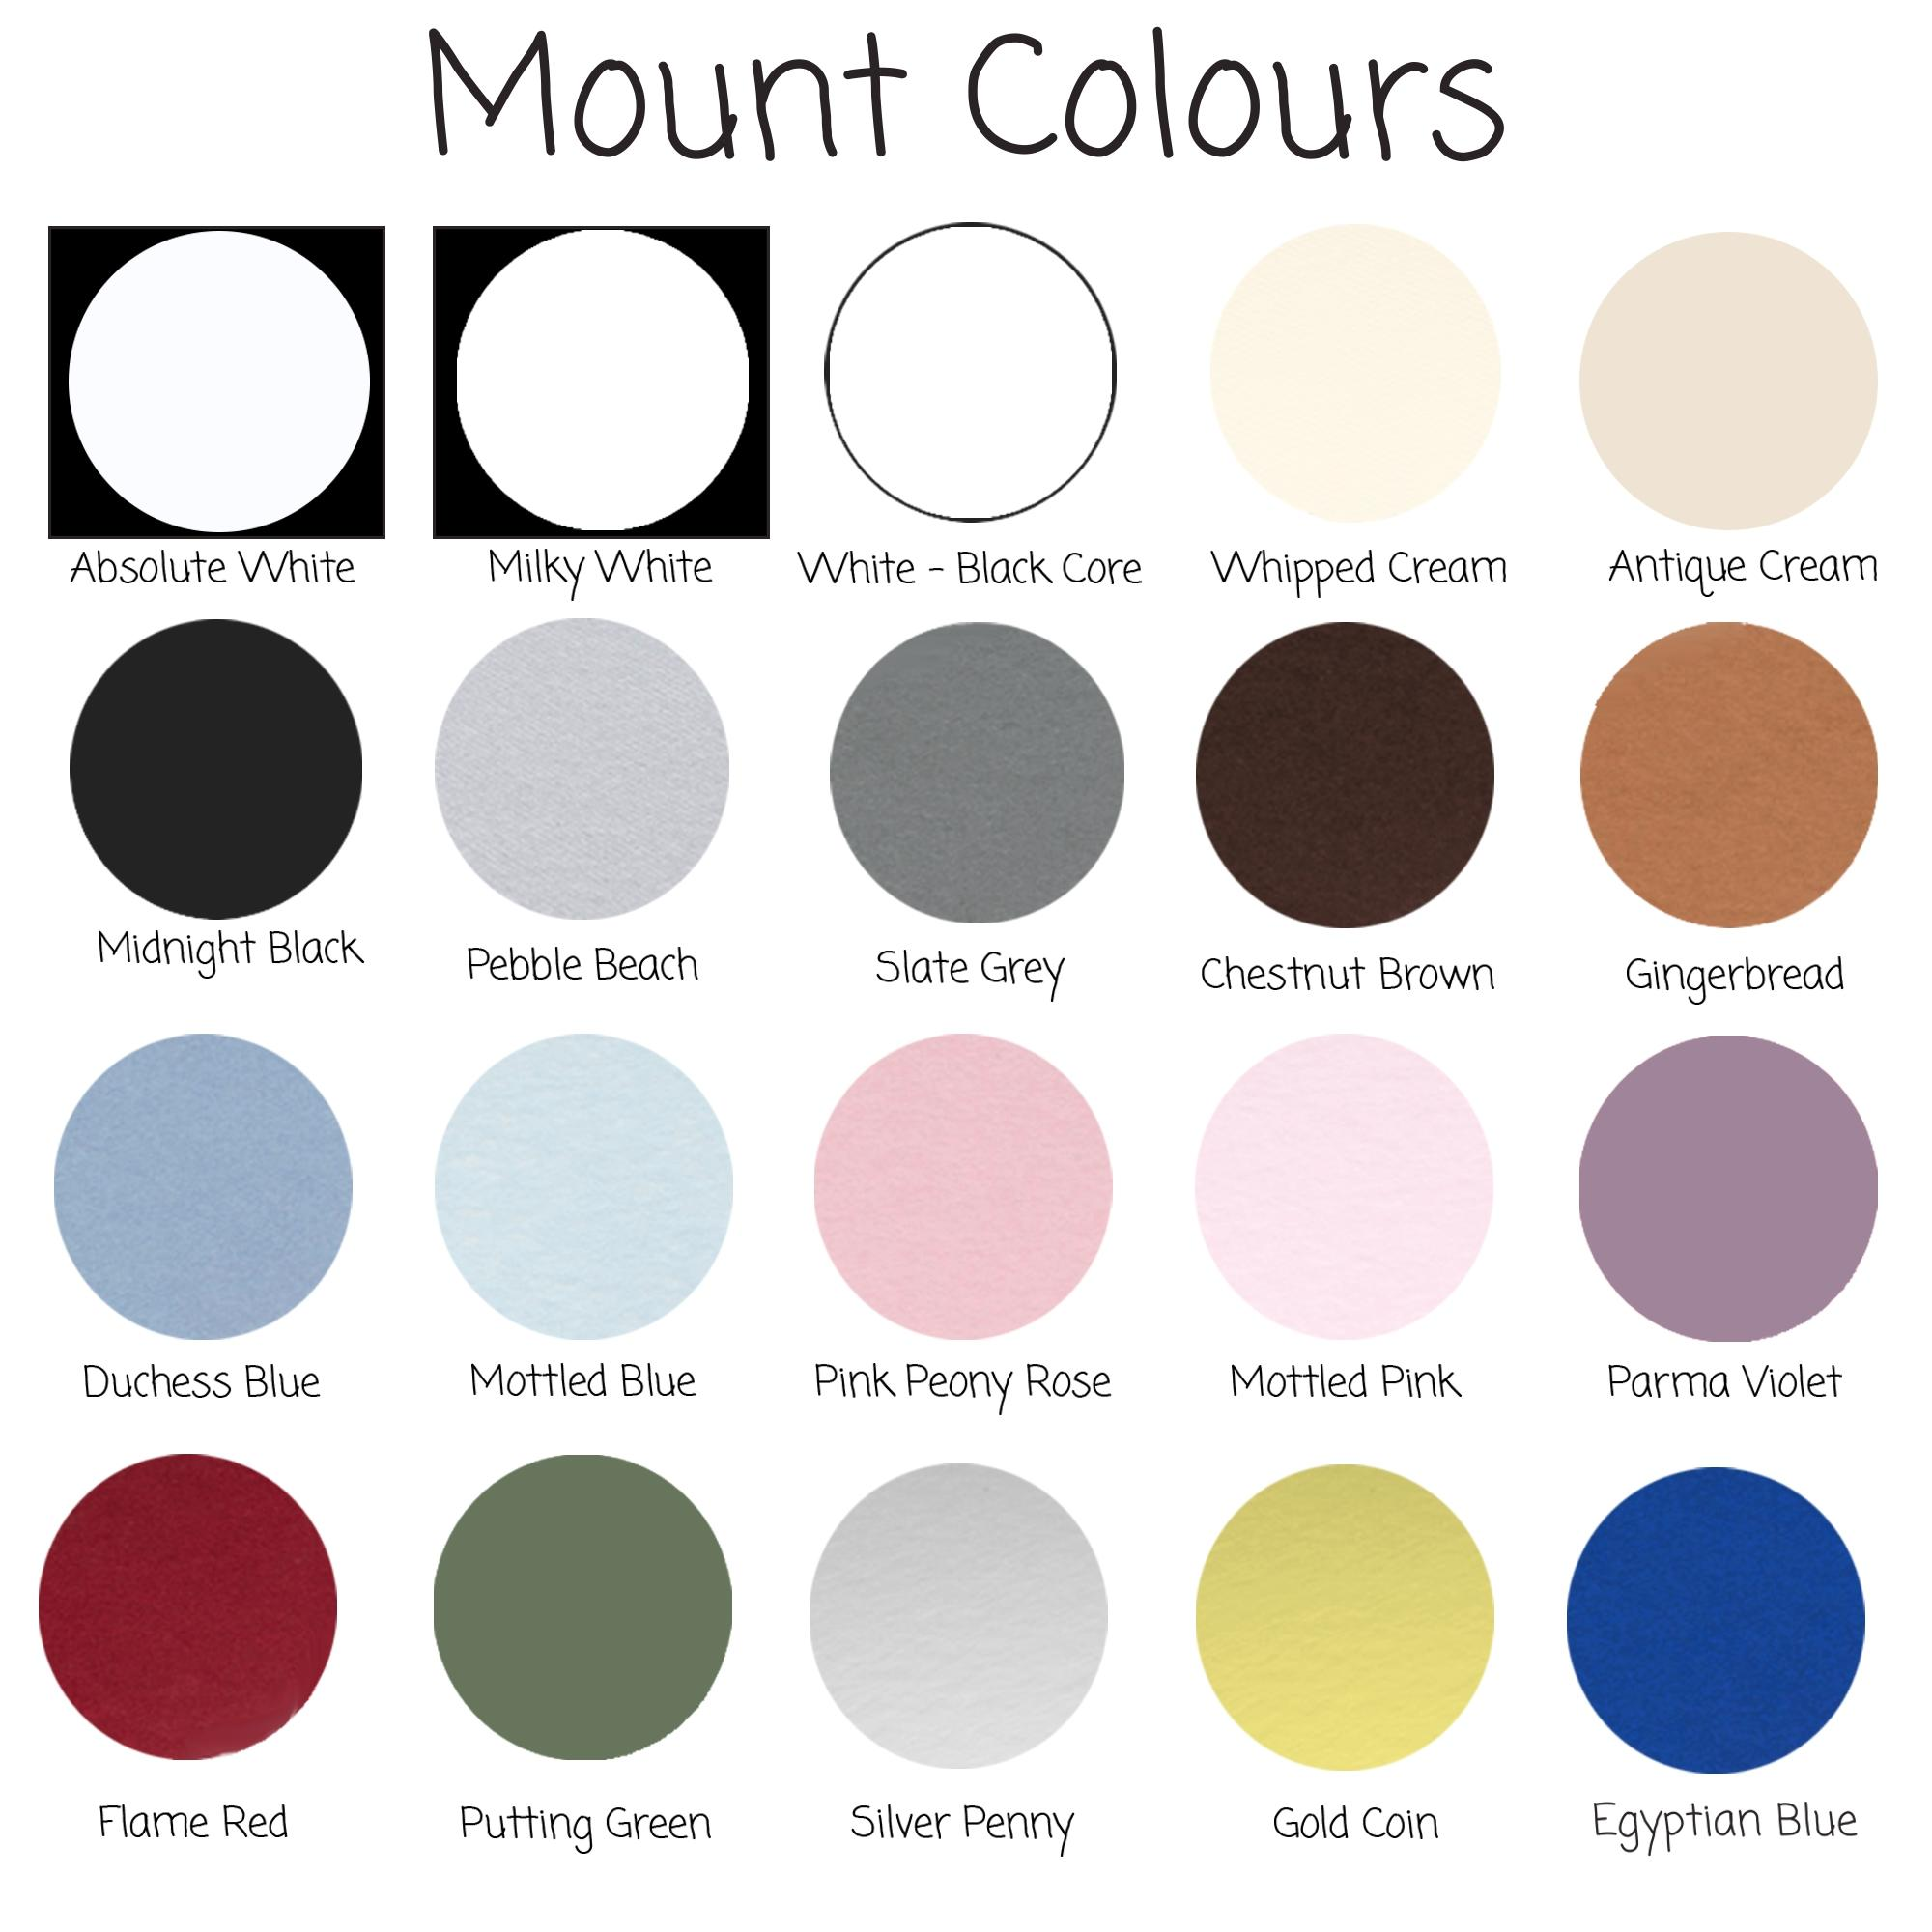 Mount Colours